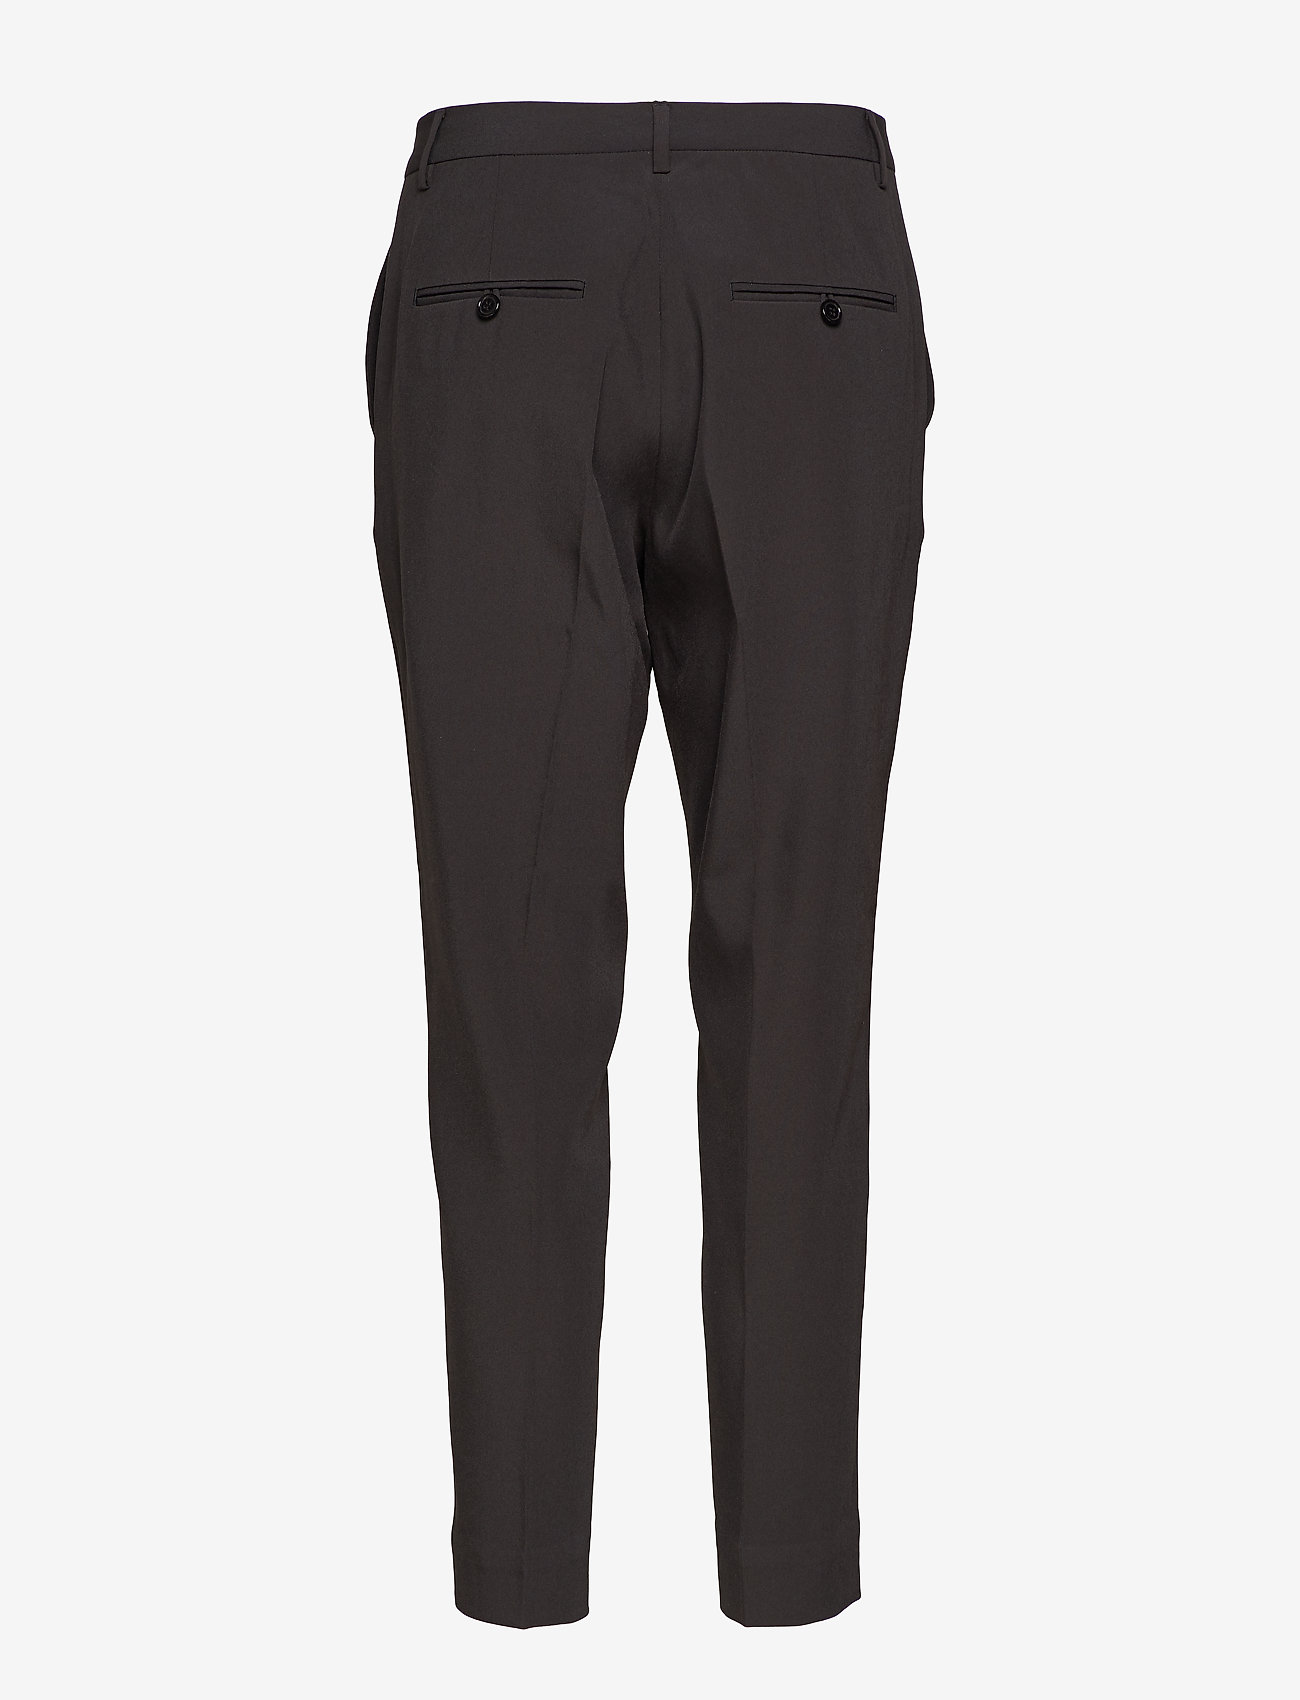 Whyred - BLUE - straight leg trousers - black - 1